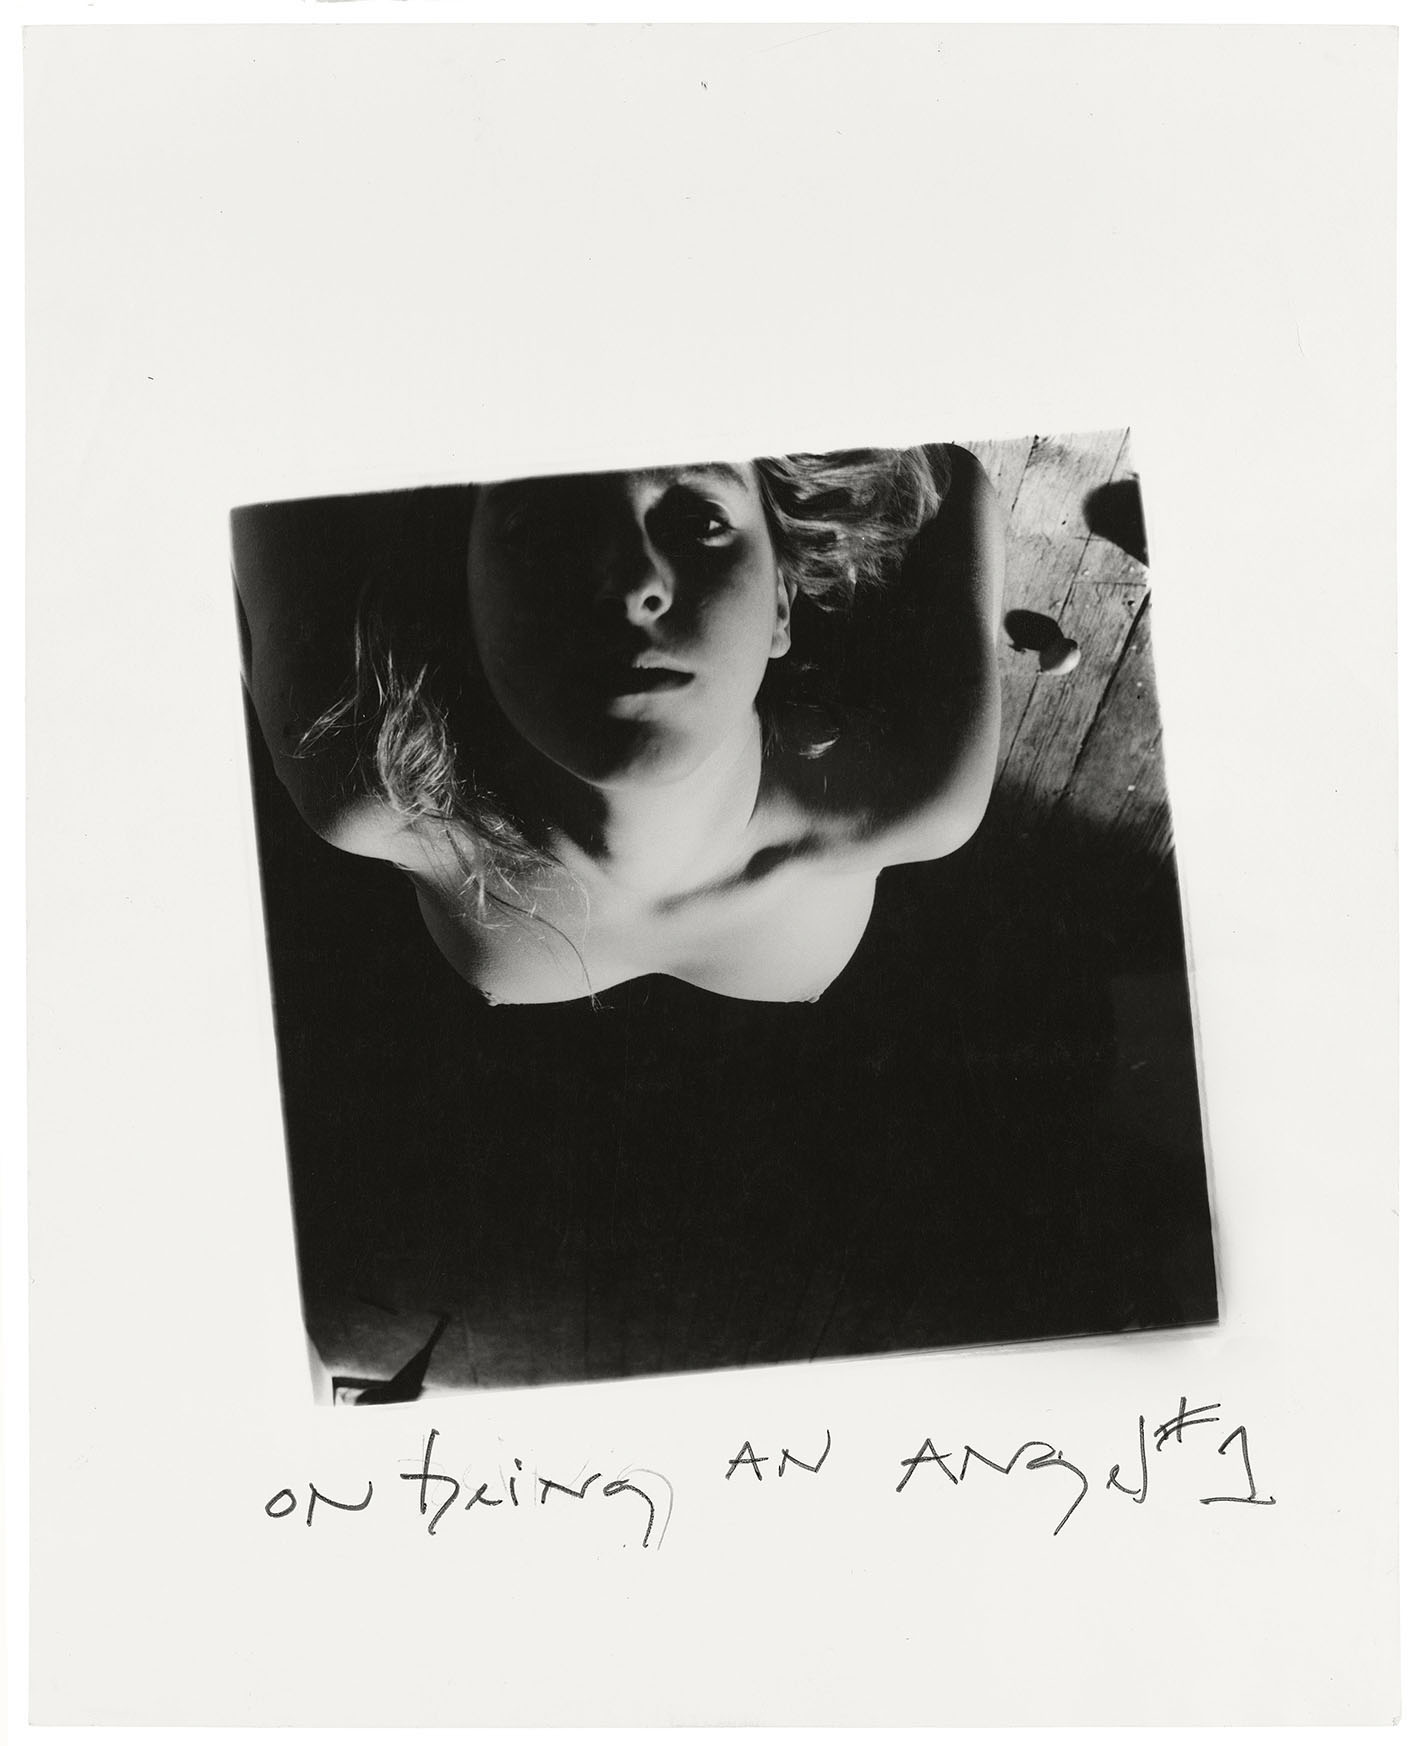 Francesca Woodman, On Being an Angel # 1, 1977. © Betty and George Woodman.